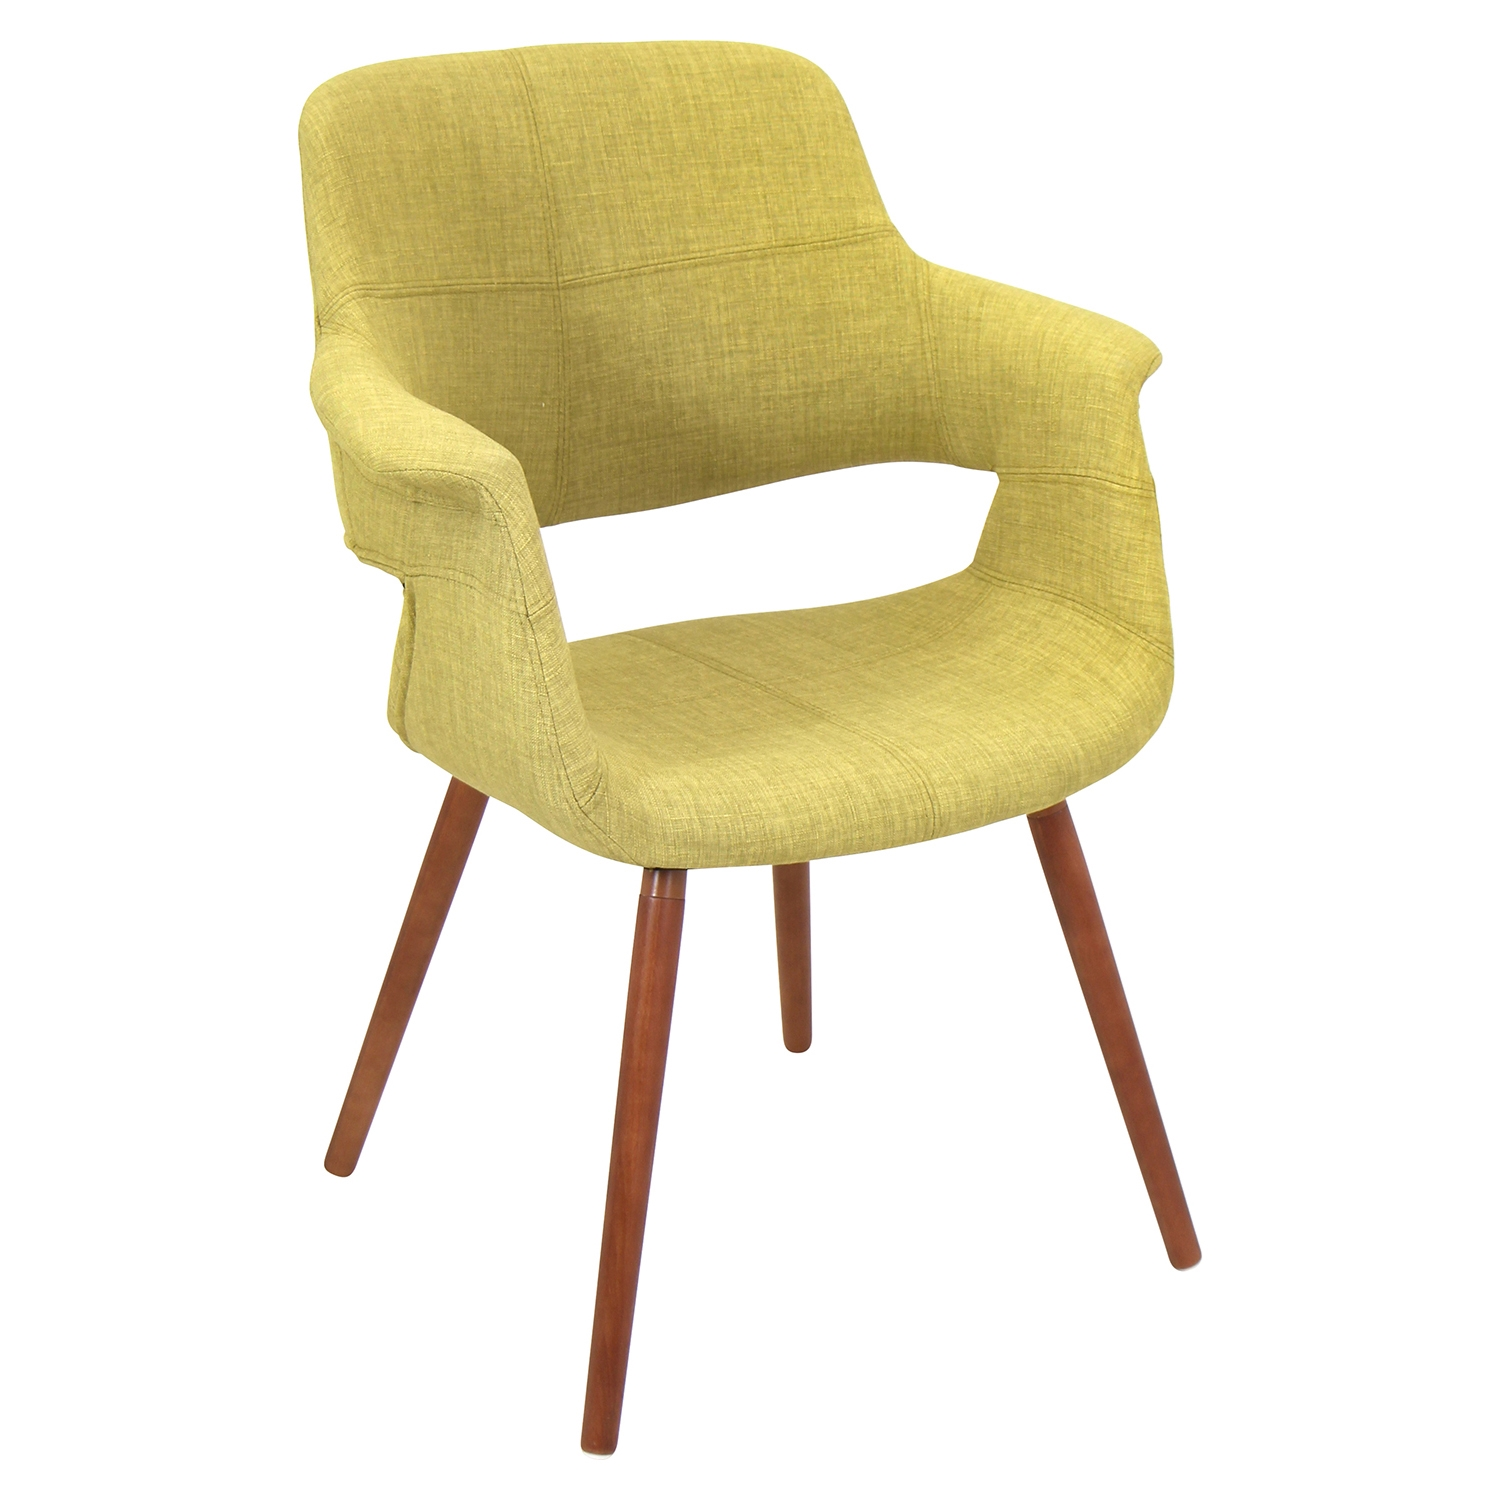 Vintage Flair Chair - Walnut, Green